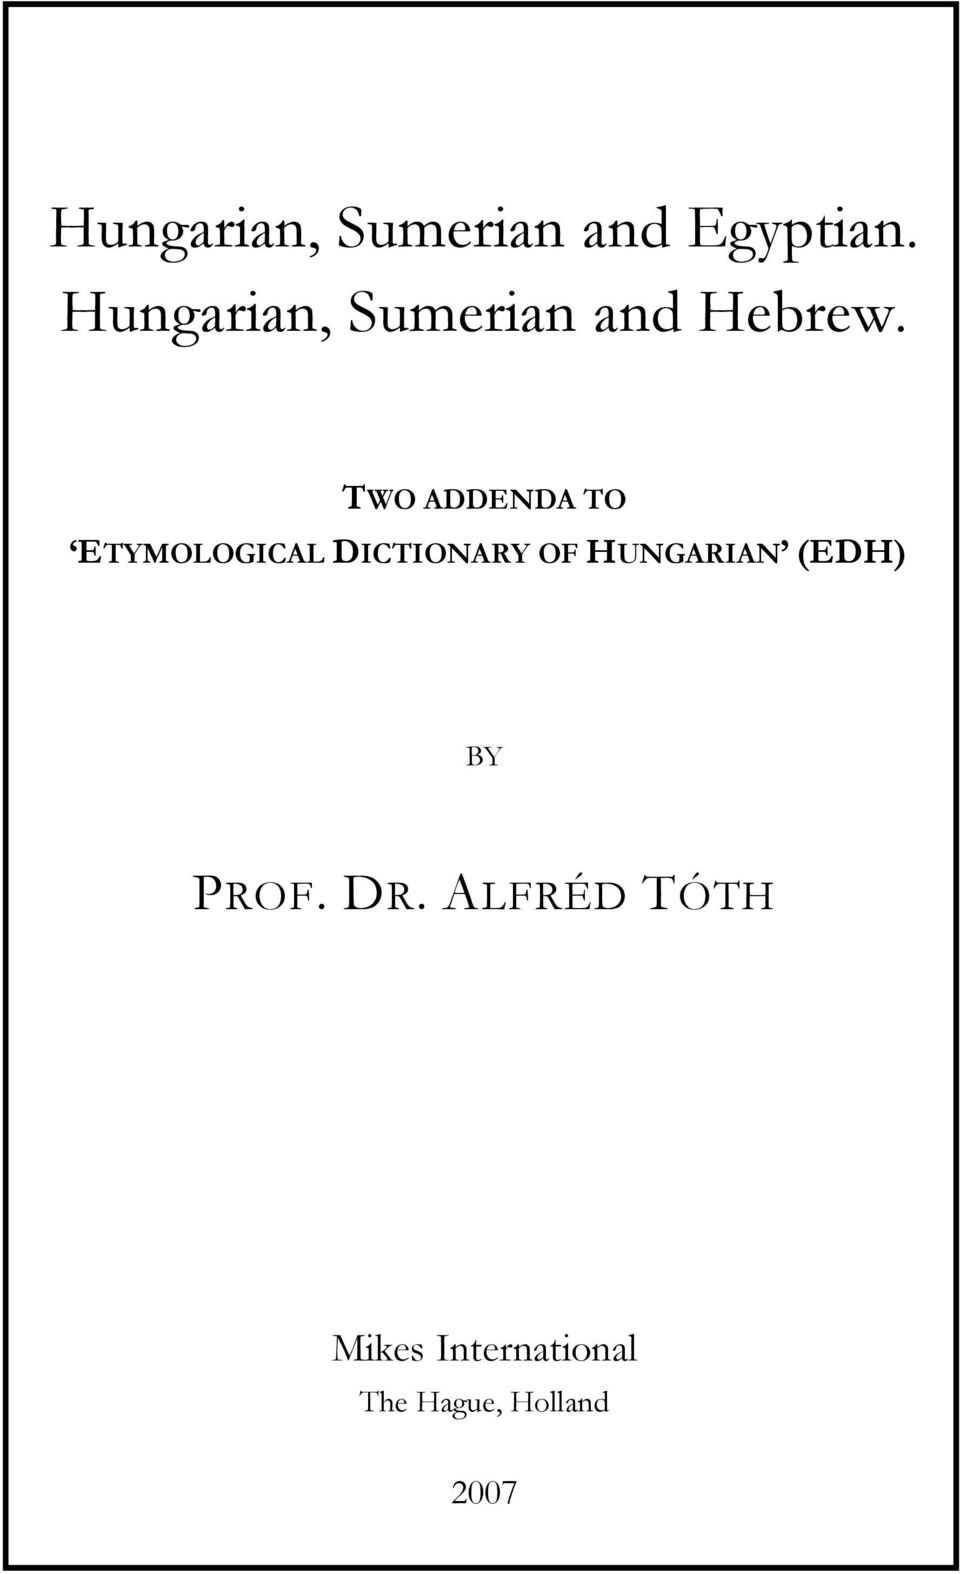 TWO ADDENDA TO ETYMOLOGICAL DICTIONARY OF